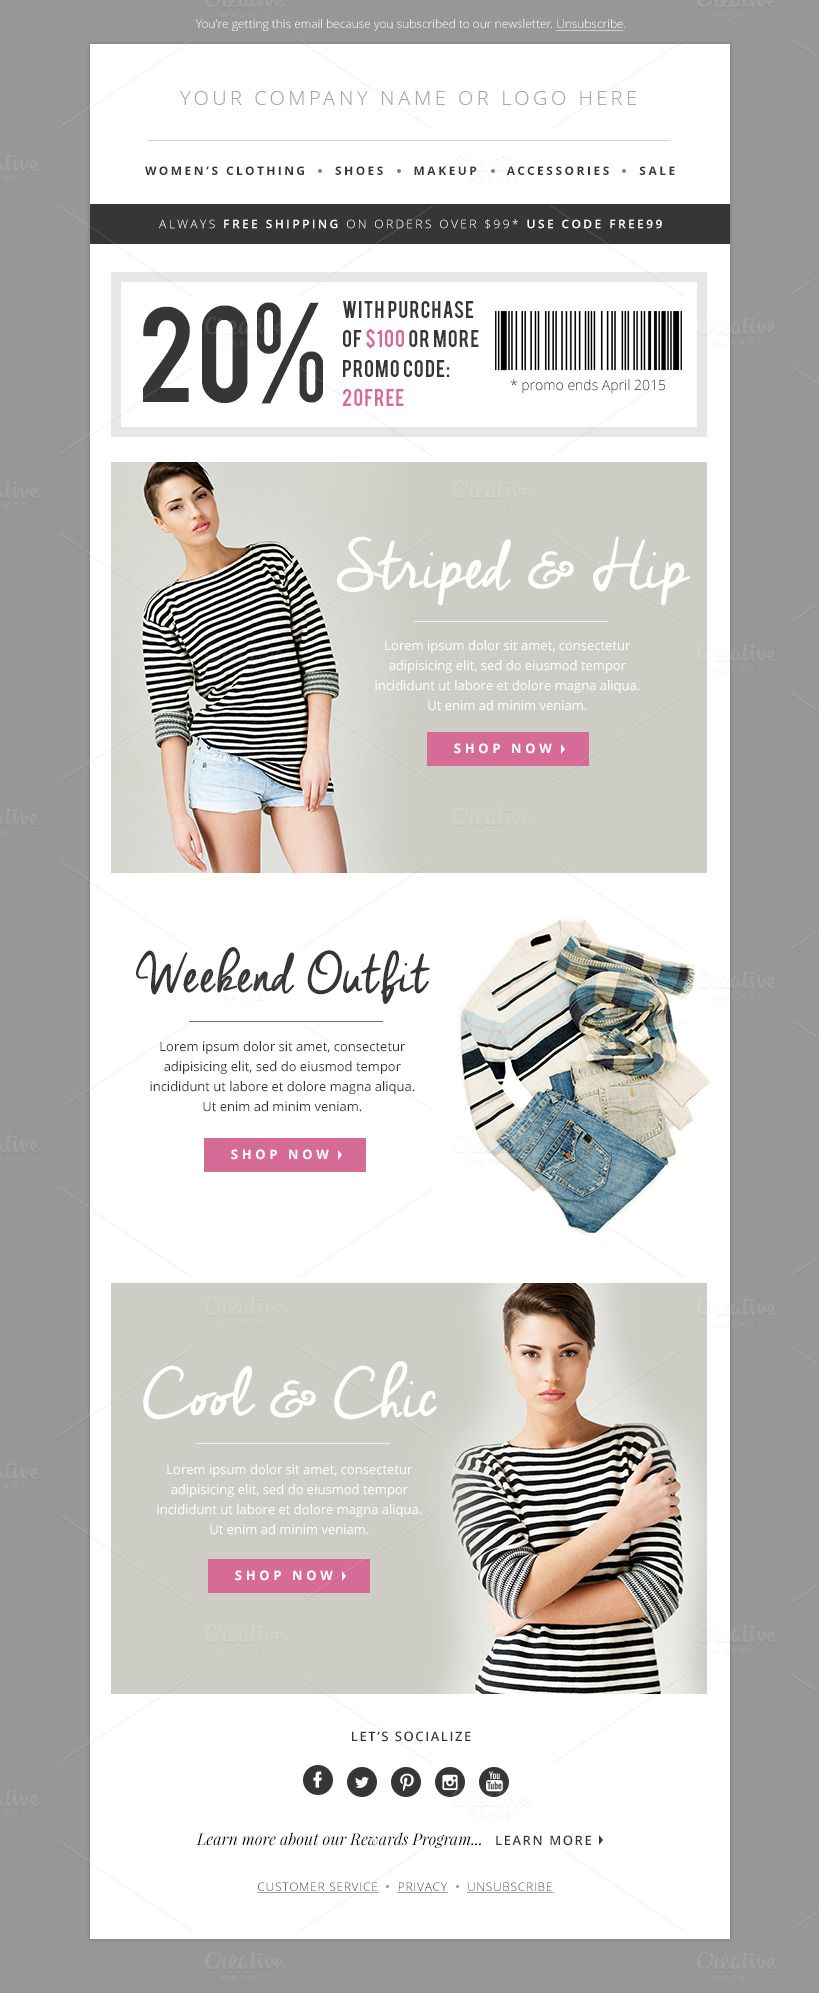 Sales Fashion E-mail Template PSD | Email Templates by Adelina ...